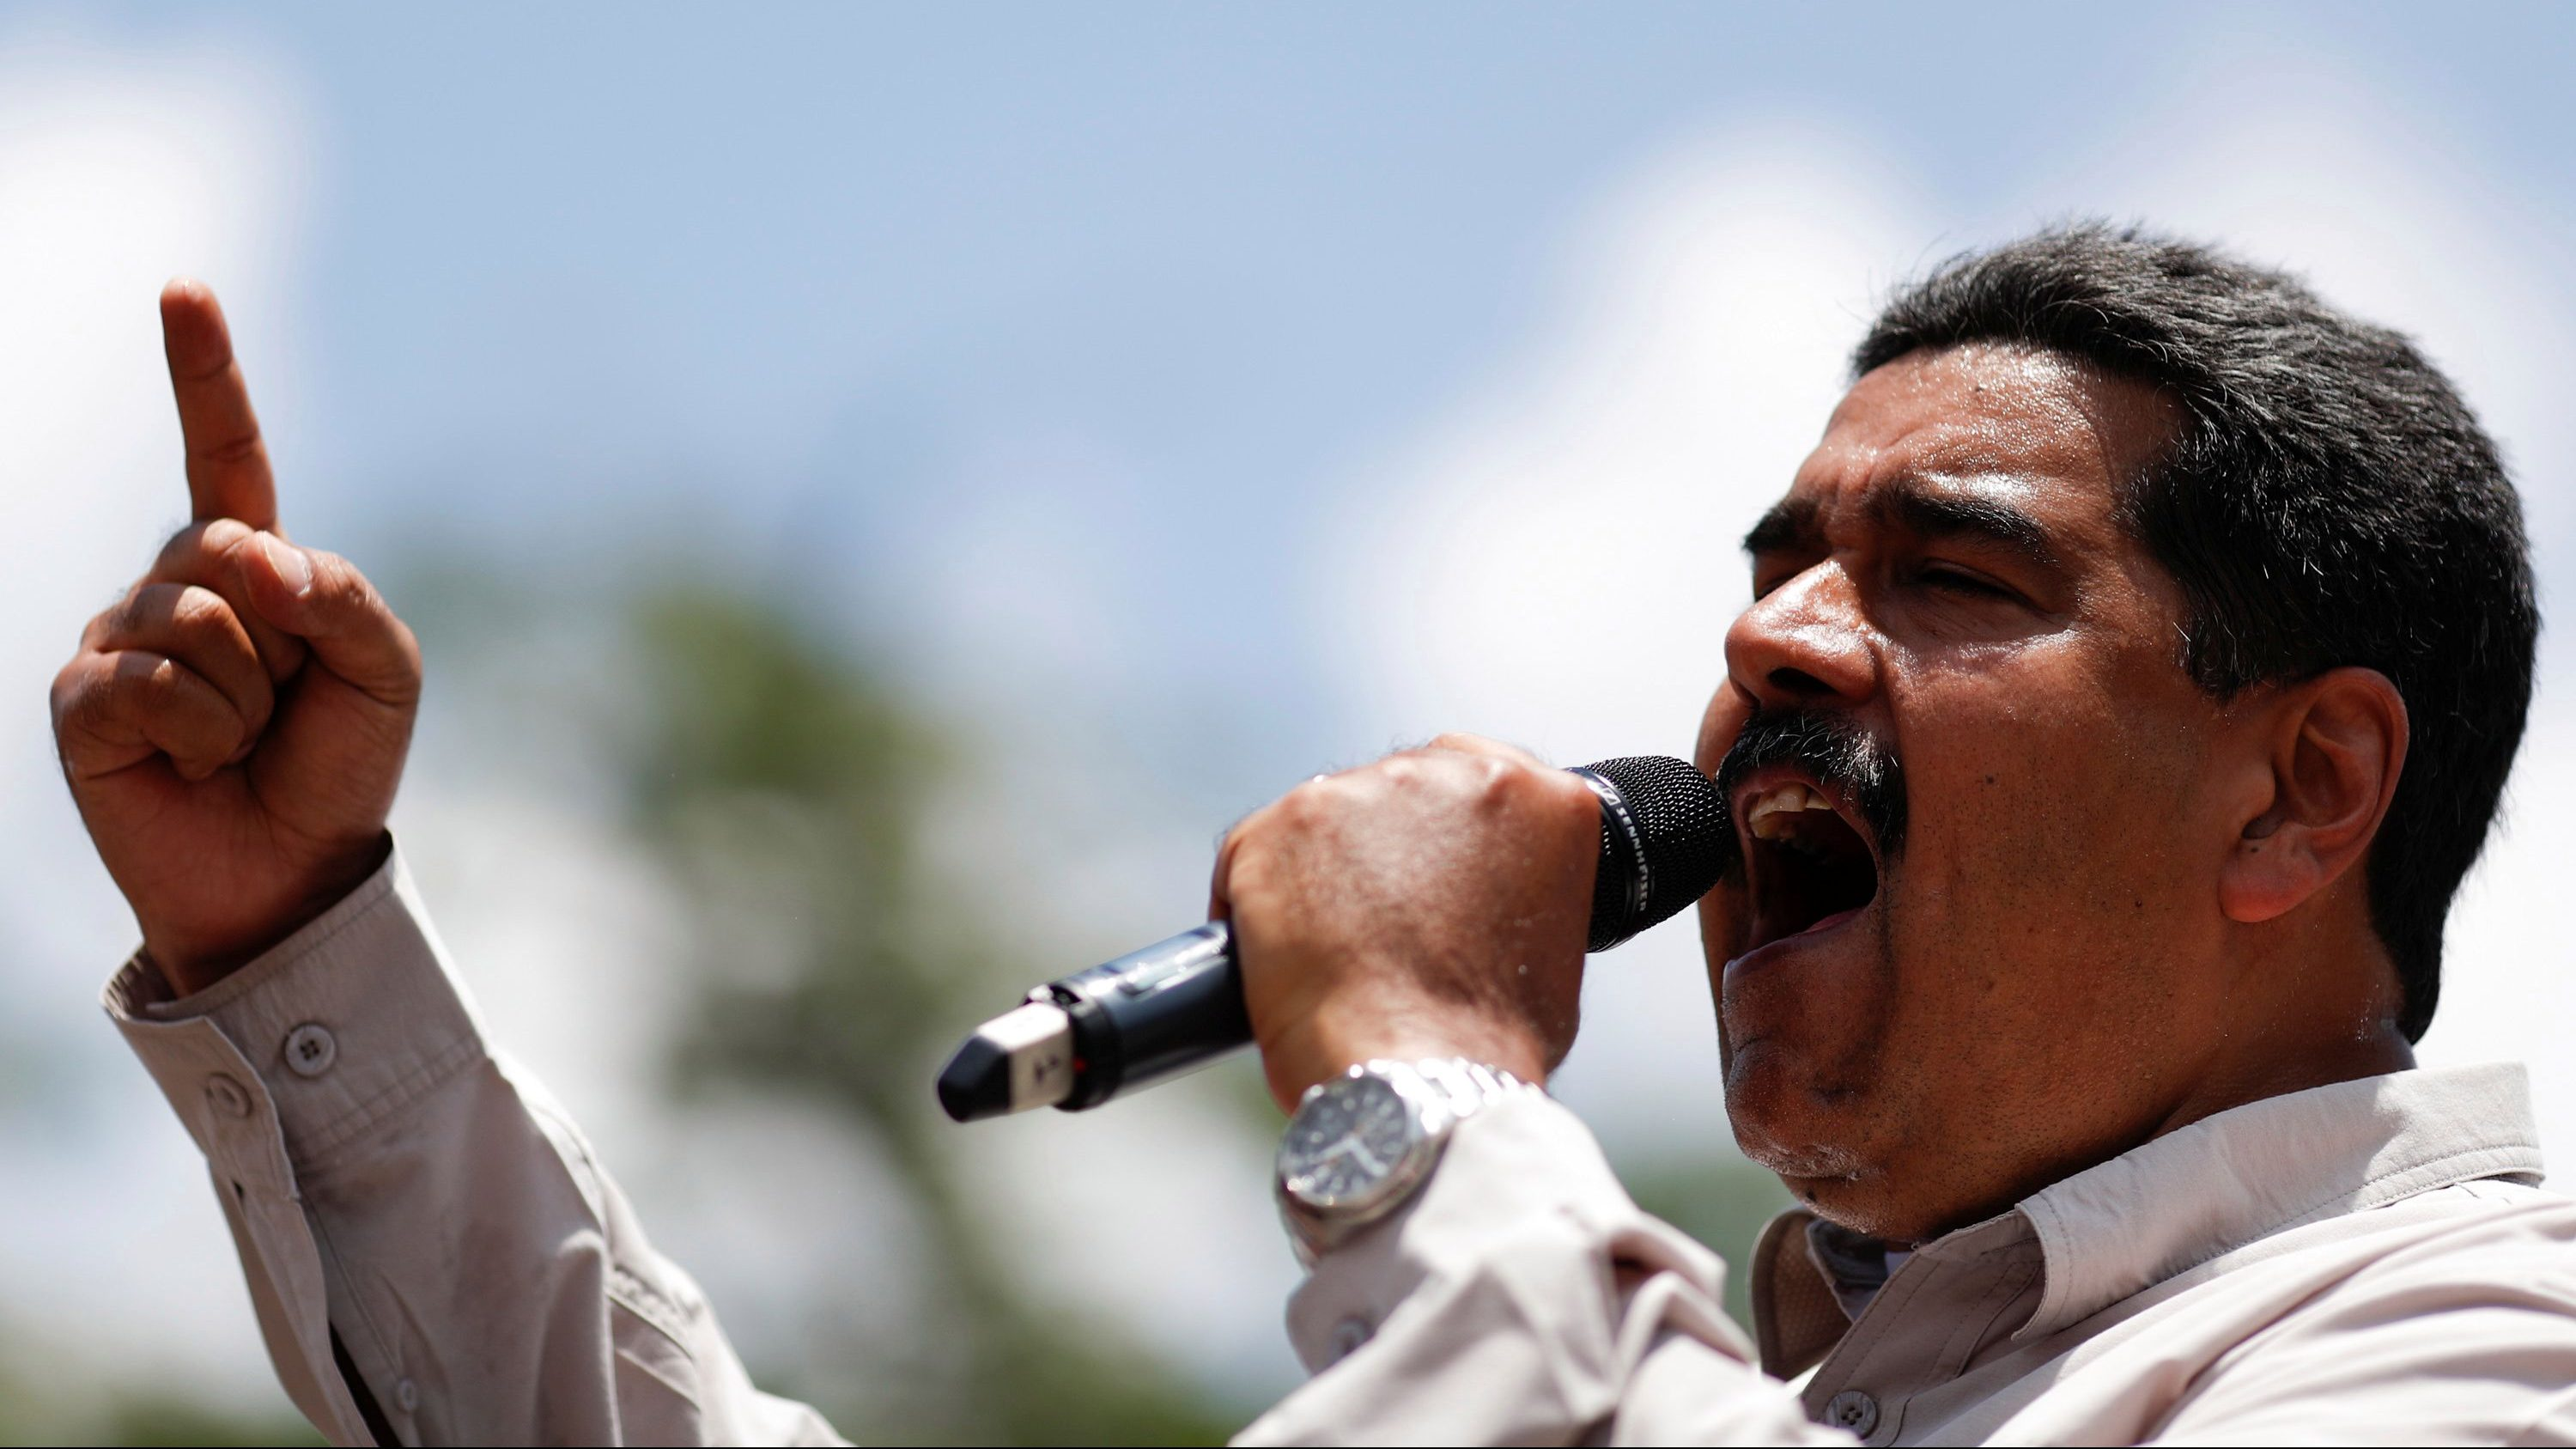 Venezuela's President Nicolas Maduro delivers a speech to supporters during a campaign rally in Charallave, Venezuela May 15, 2018.